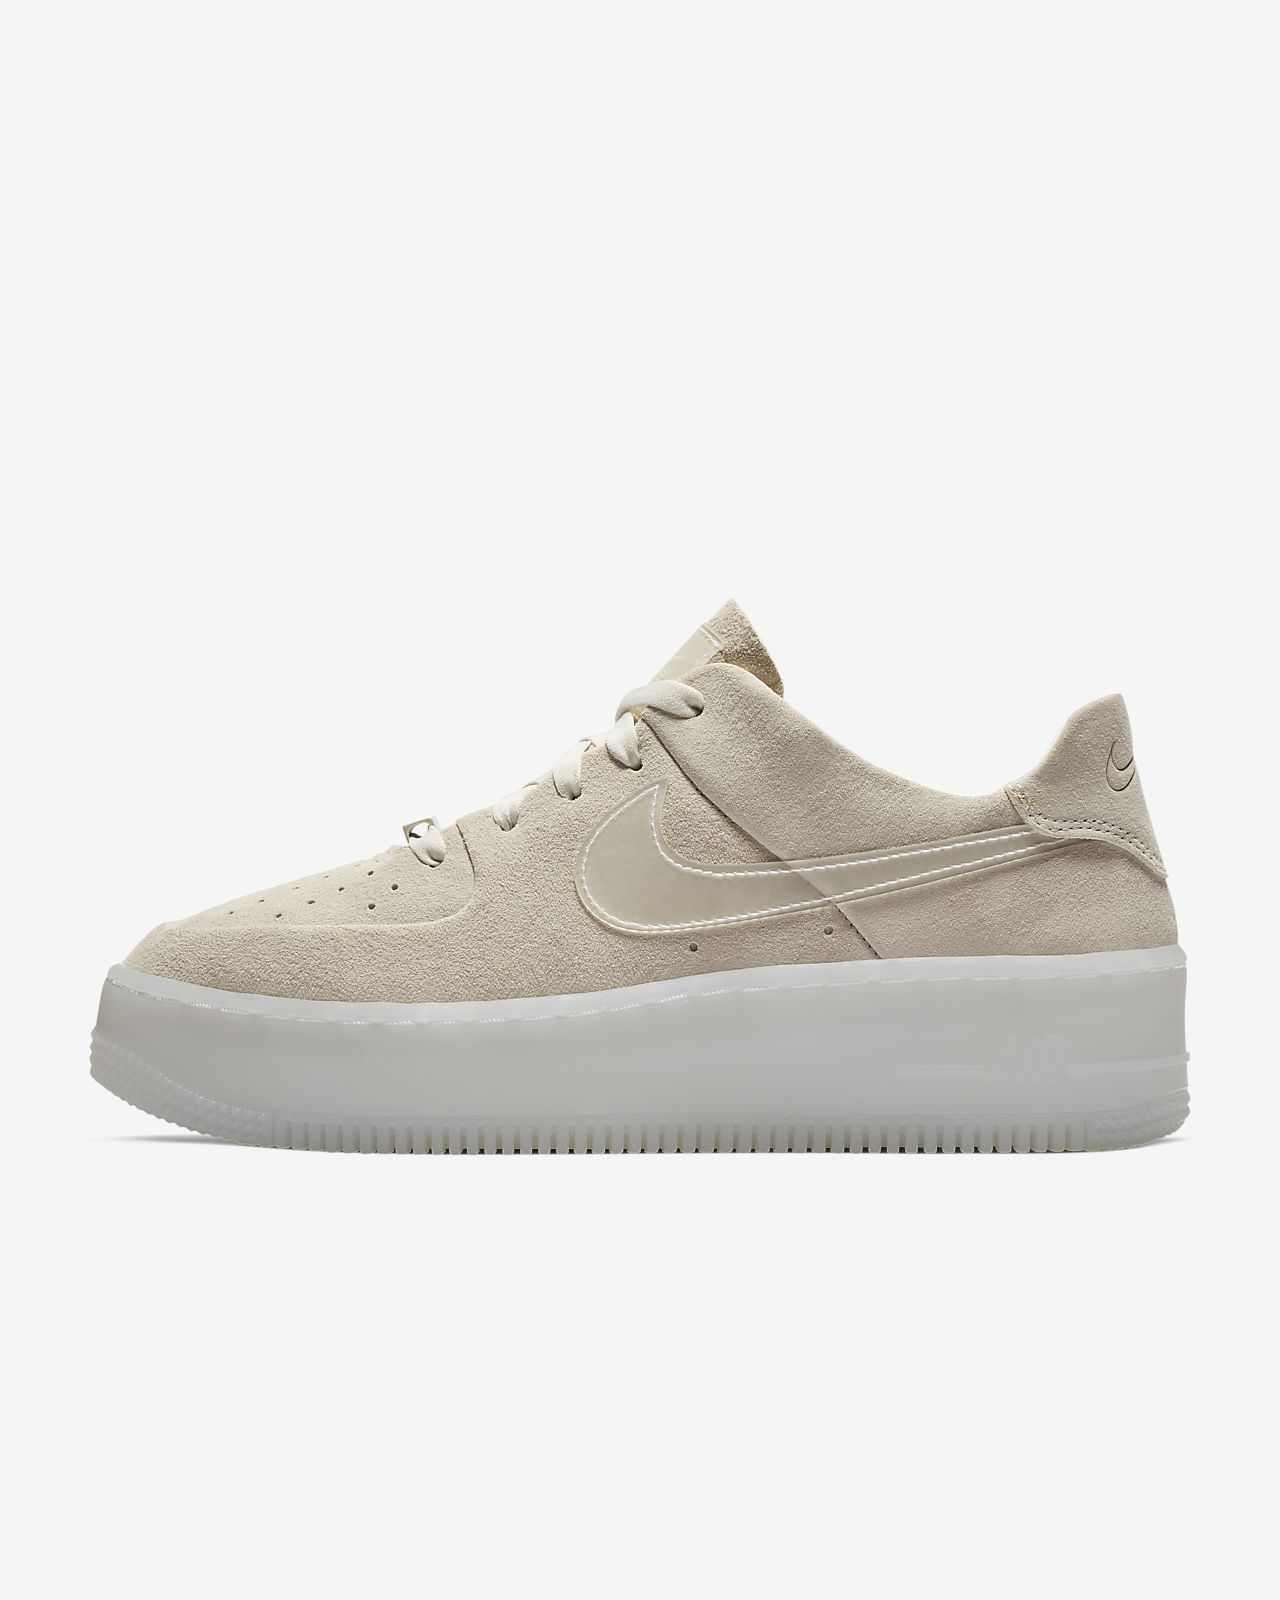 newest f7955 ed5cb ... Nike Air Force 1 Sage Low LX-sko til kvinder